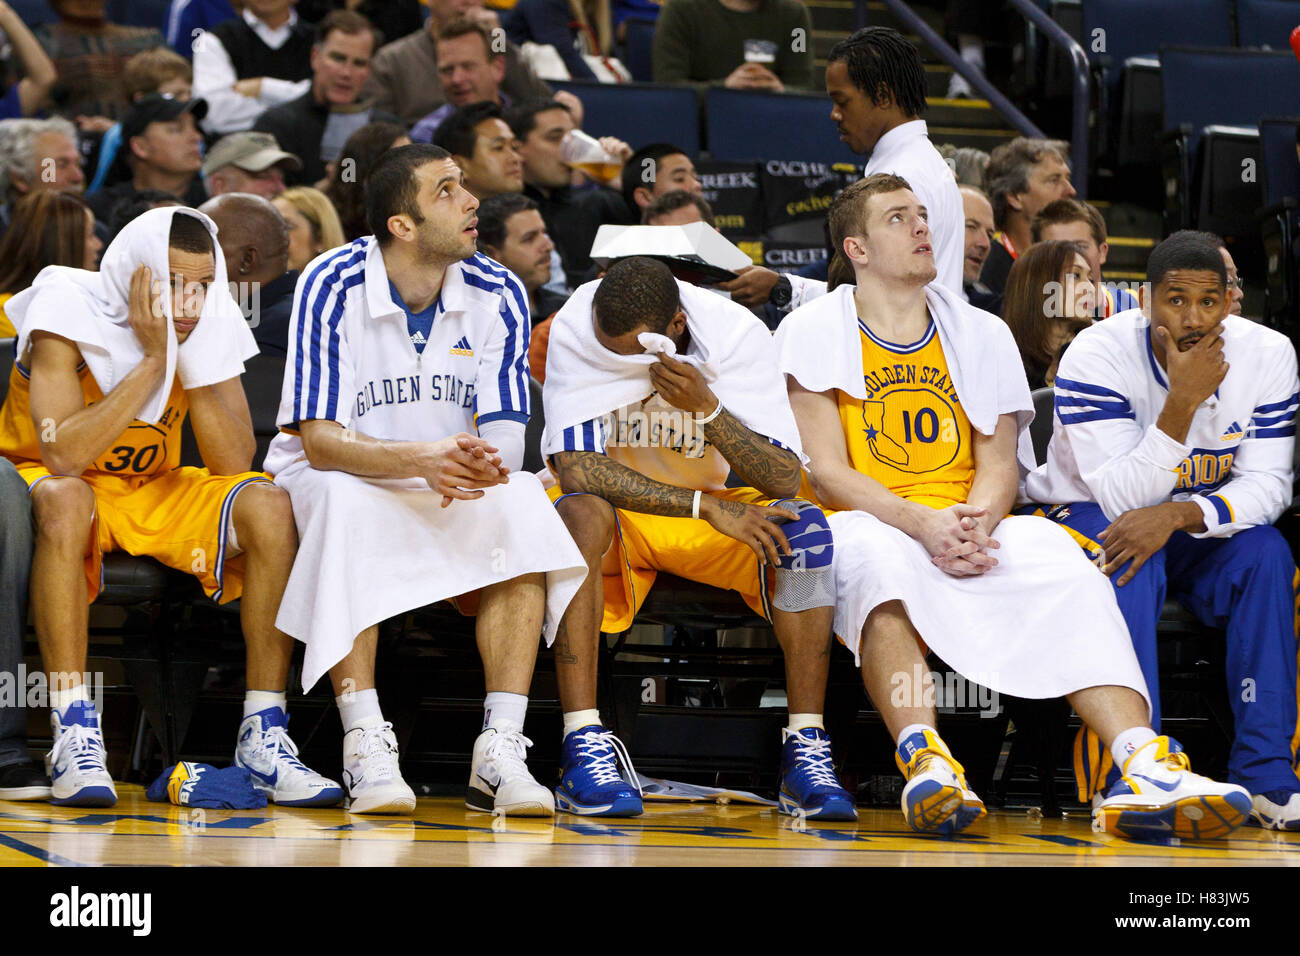 february-25-2011-oakland-ca-usa-golden-state-warriors-point-guard-stephen-curry-left-small-forward-vladimir-radmanovic-second-from-left